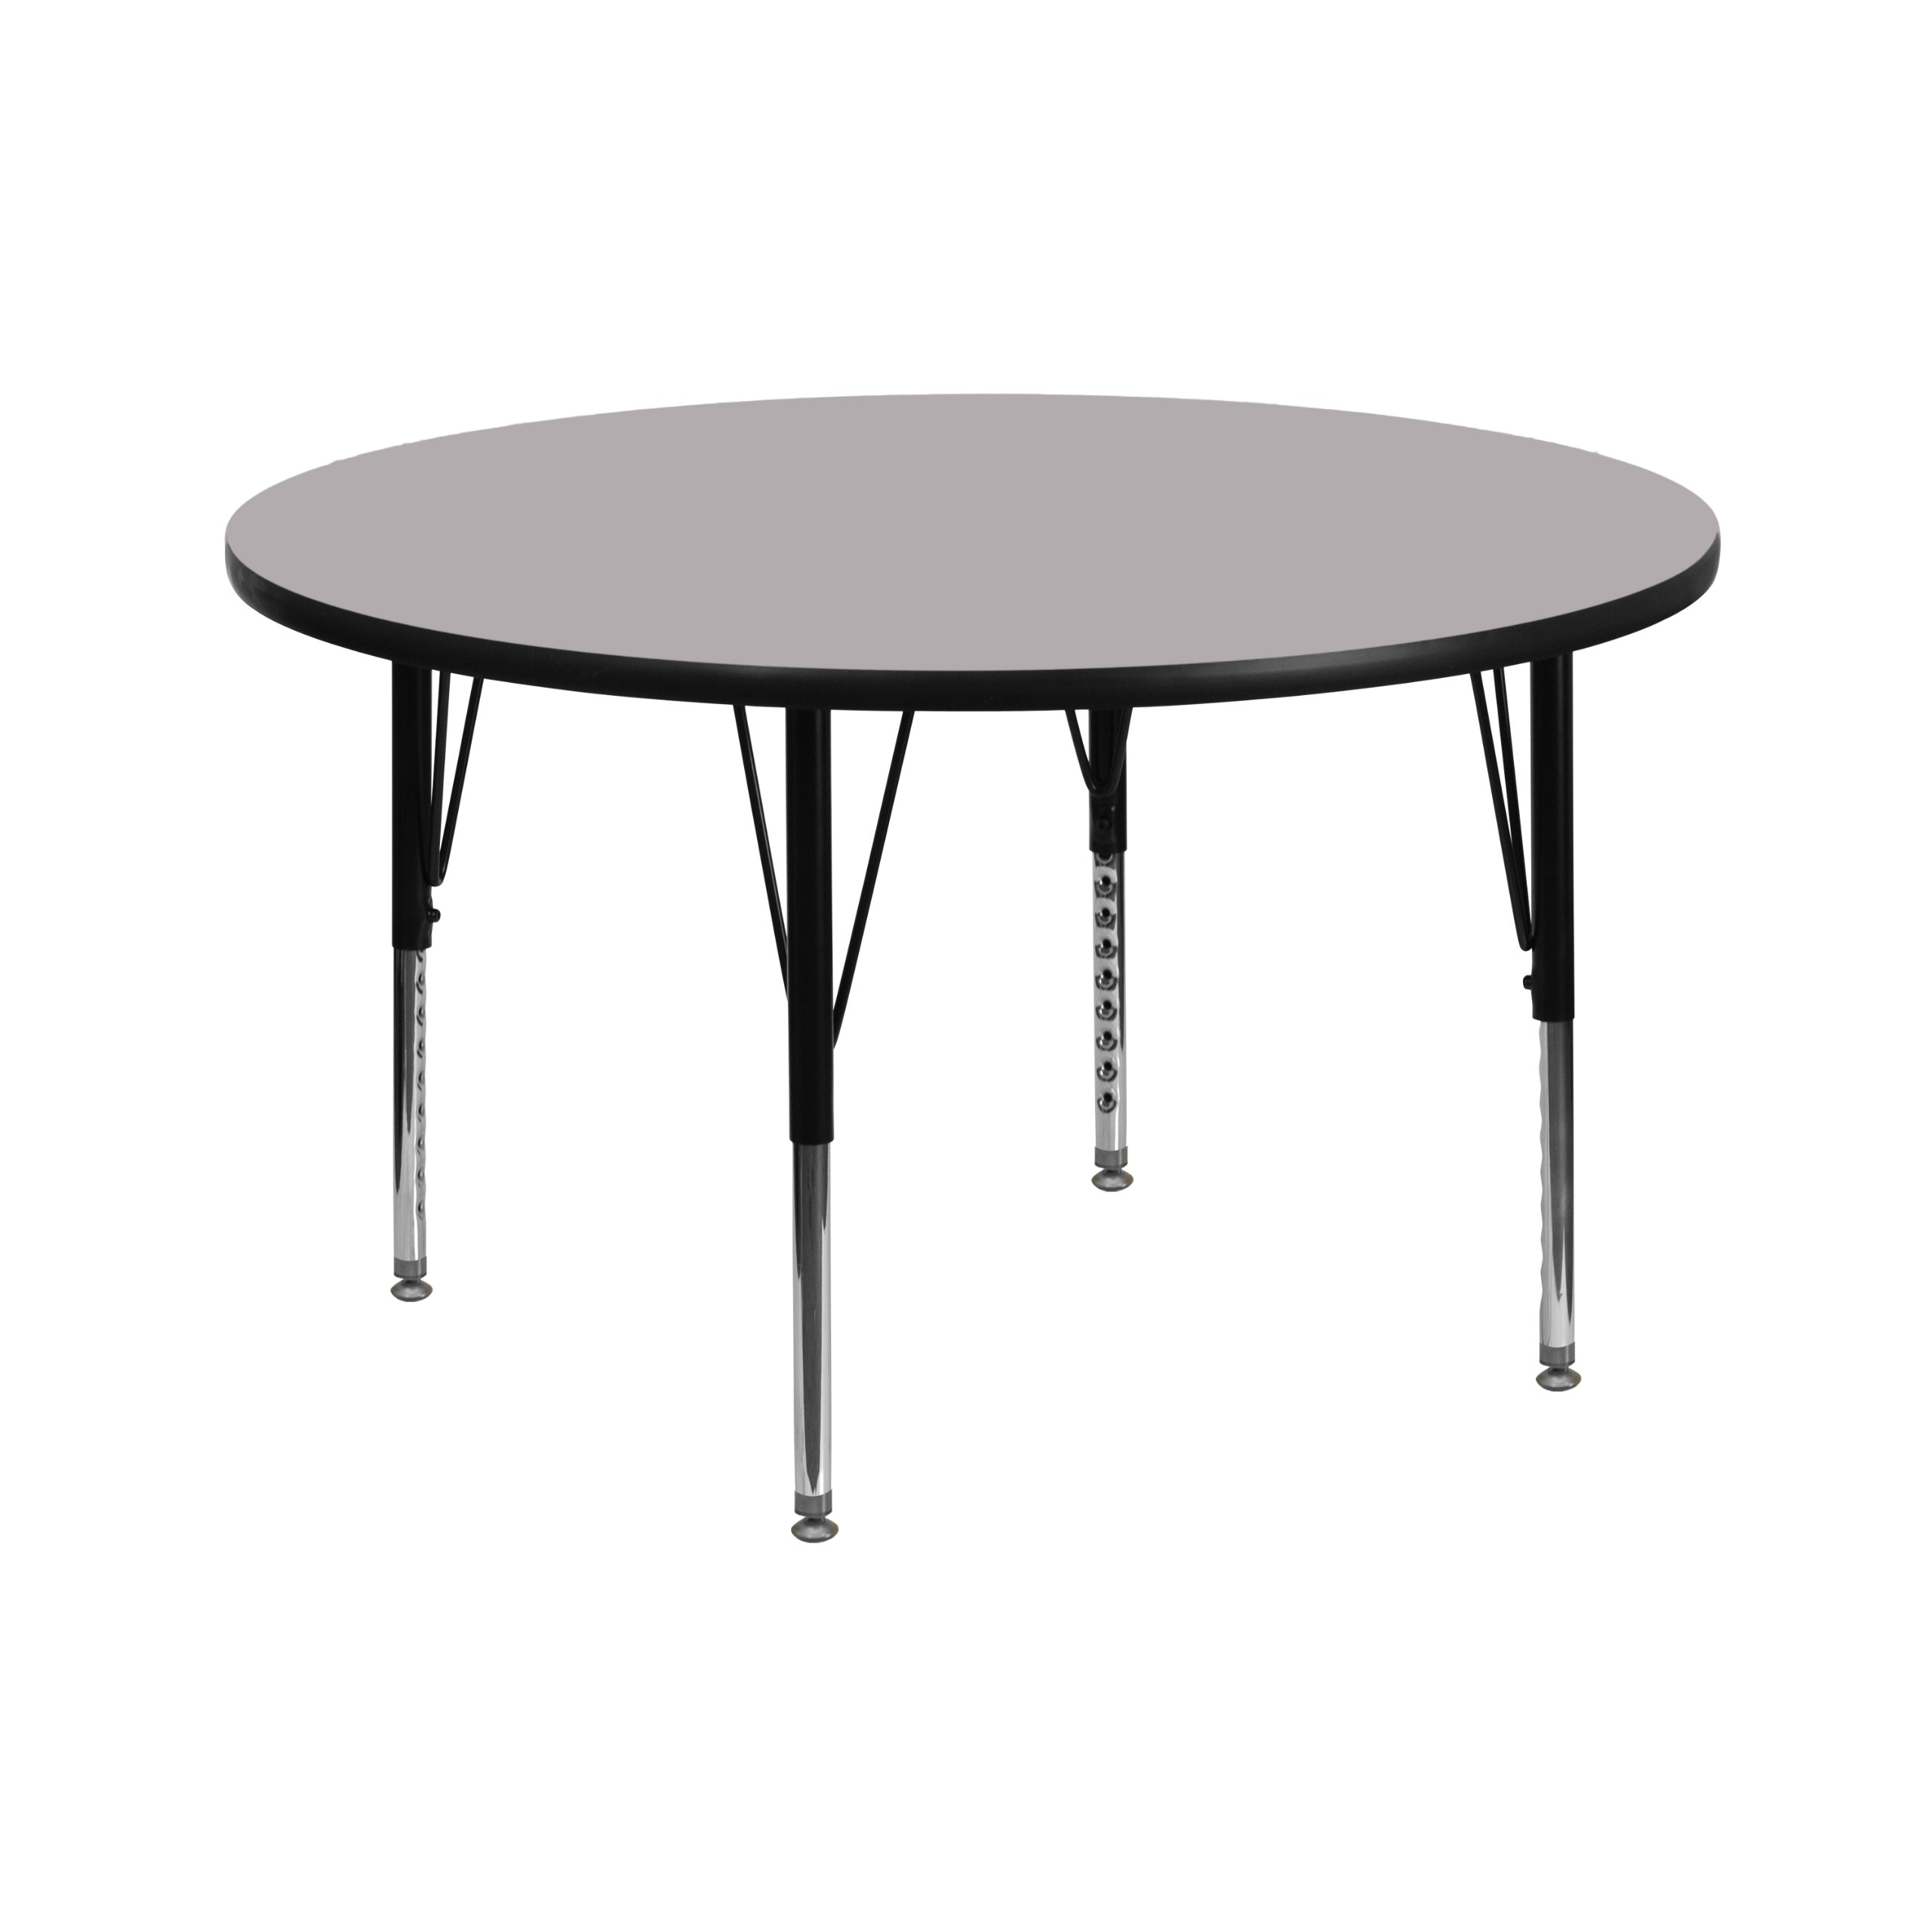 Flash Furniture 42'' Round Grey Thermal Laminate Activity Table - Height Adjustable Short Legs by Flash Furniture